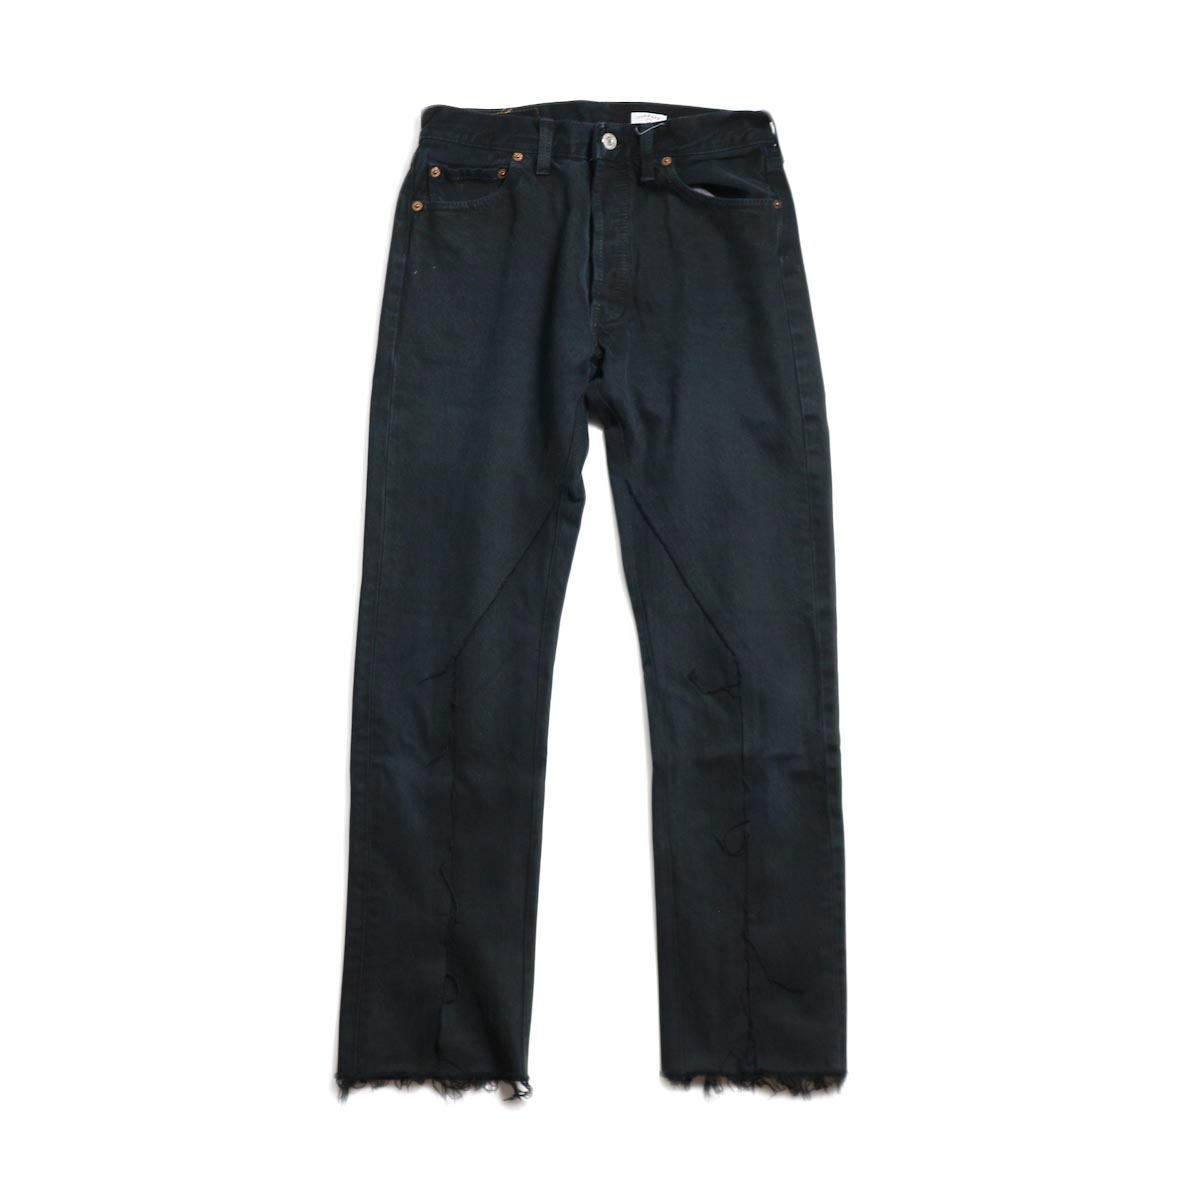 OLD PARK / Slit Jeans -Black Ssize (D)